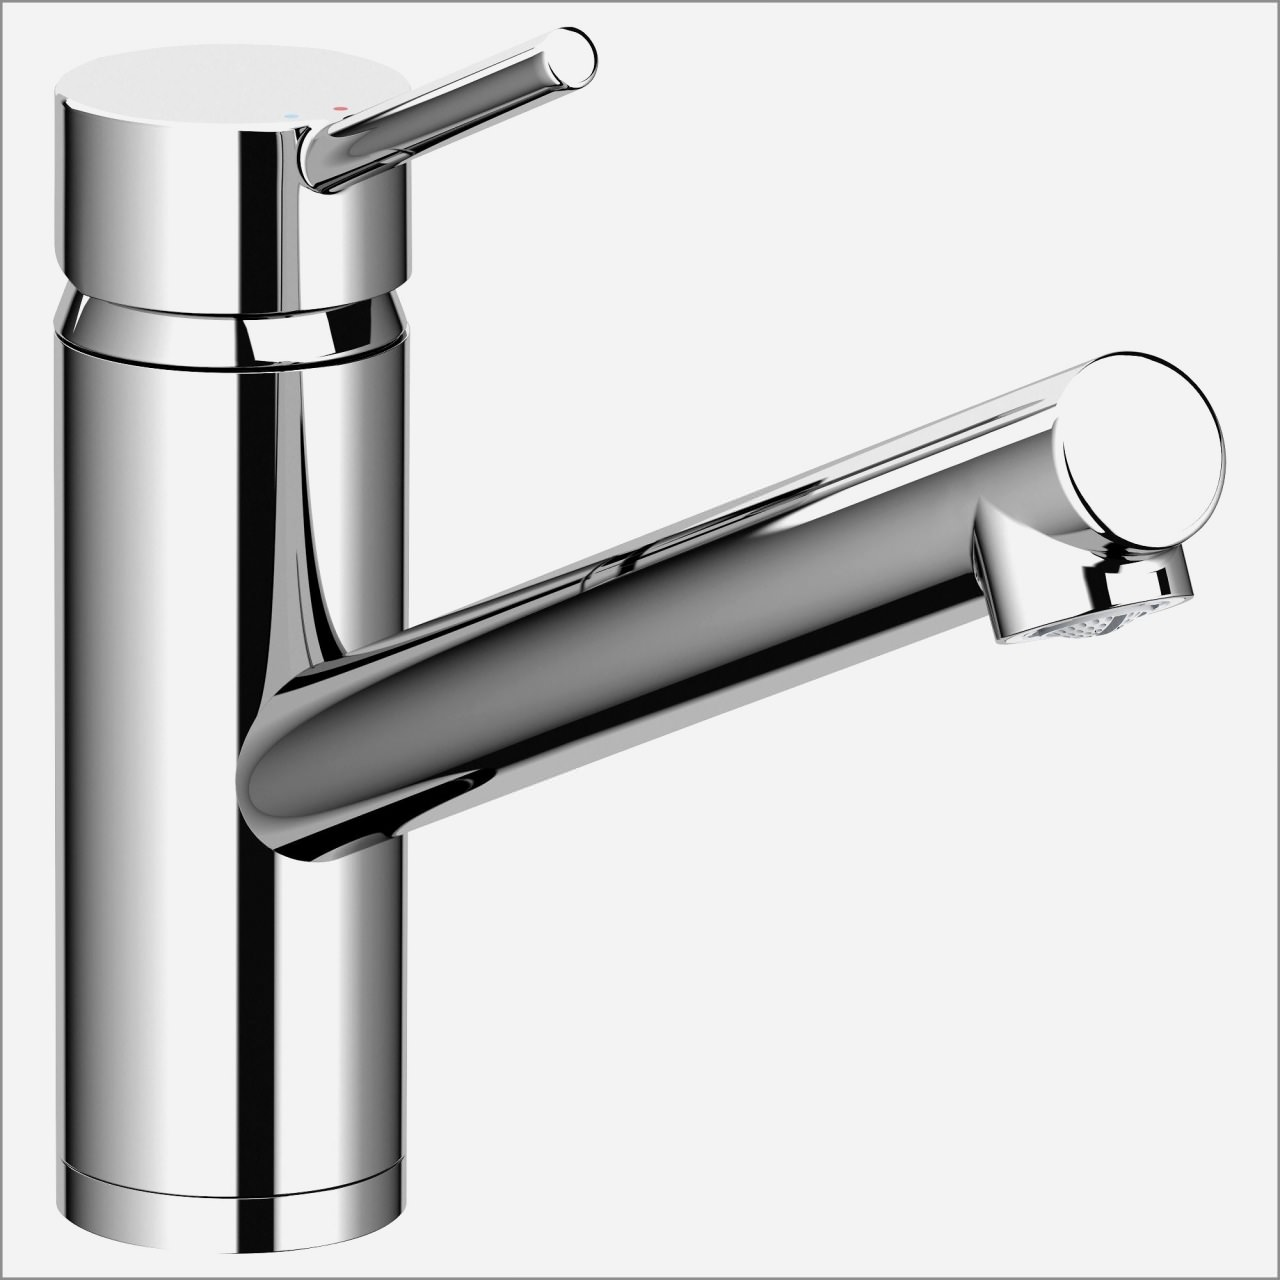 Full Size of Armatur Küche Wandmontage   21 Vornehm Grohe Küchenarmatur Road Küche Armatur Küche